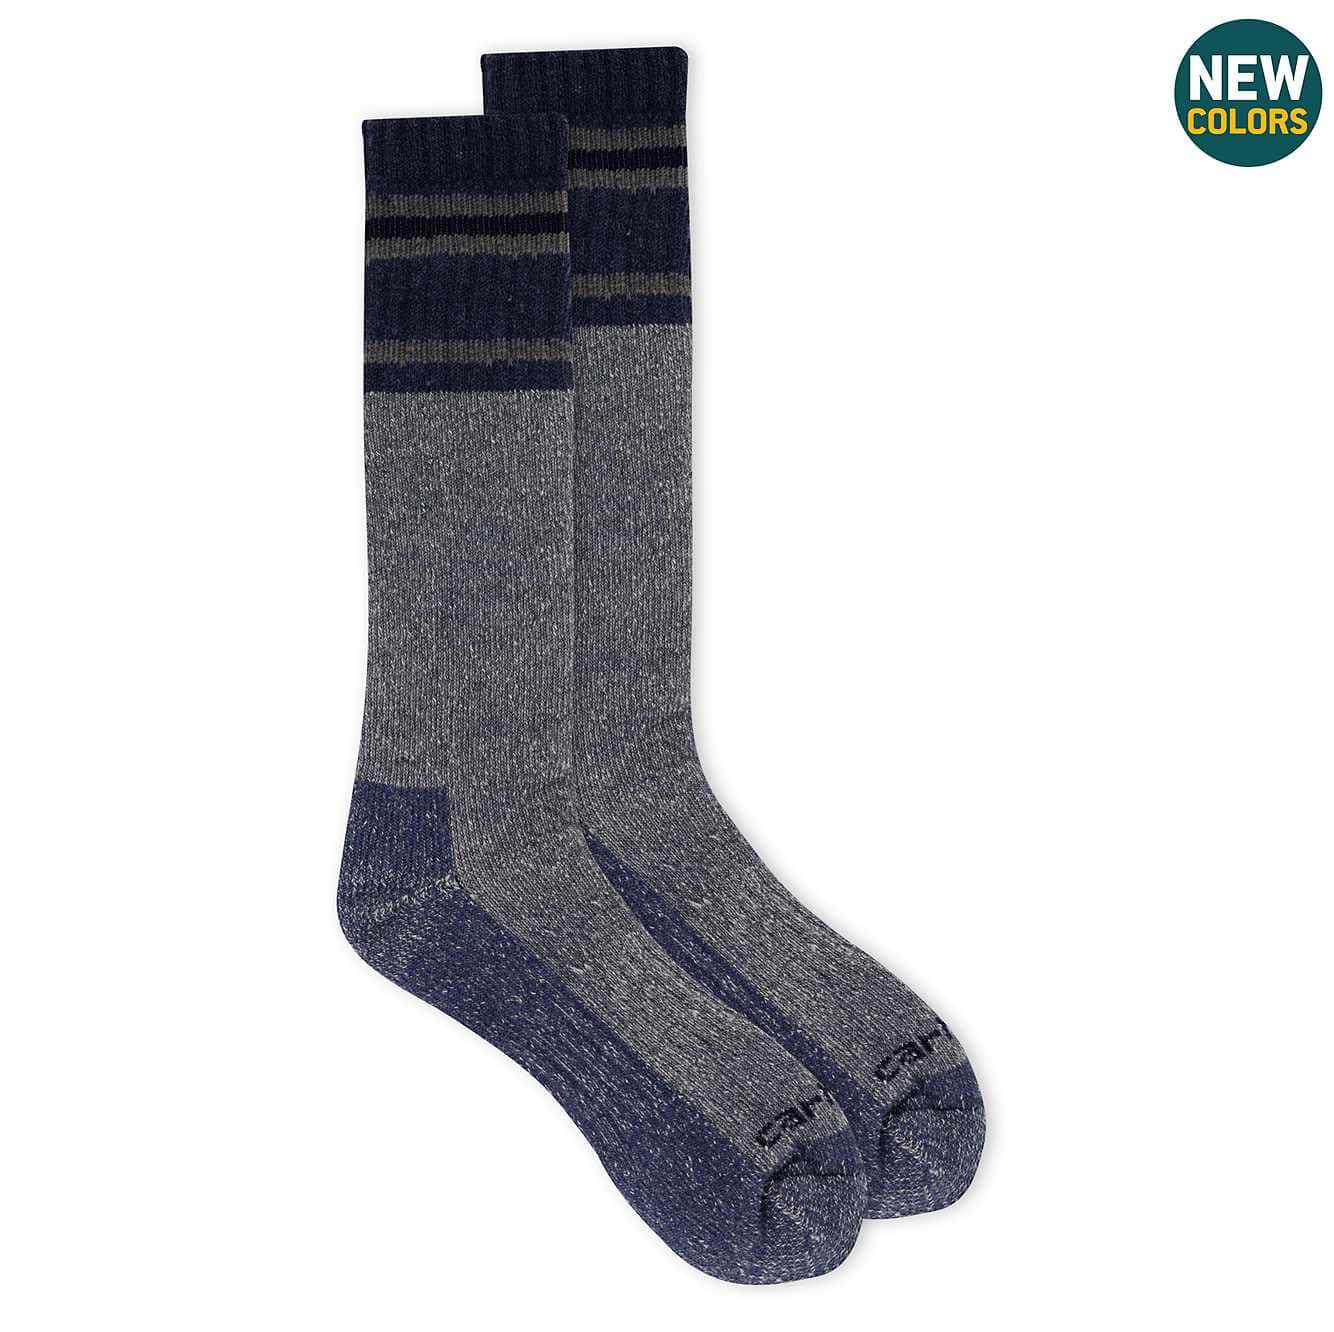 Picture of Heavy Duty Thermal Crew Boot Sock 2 Pack in Denim Heather